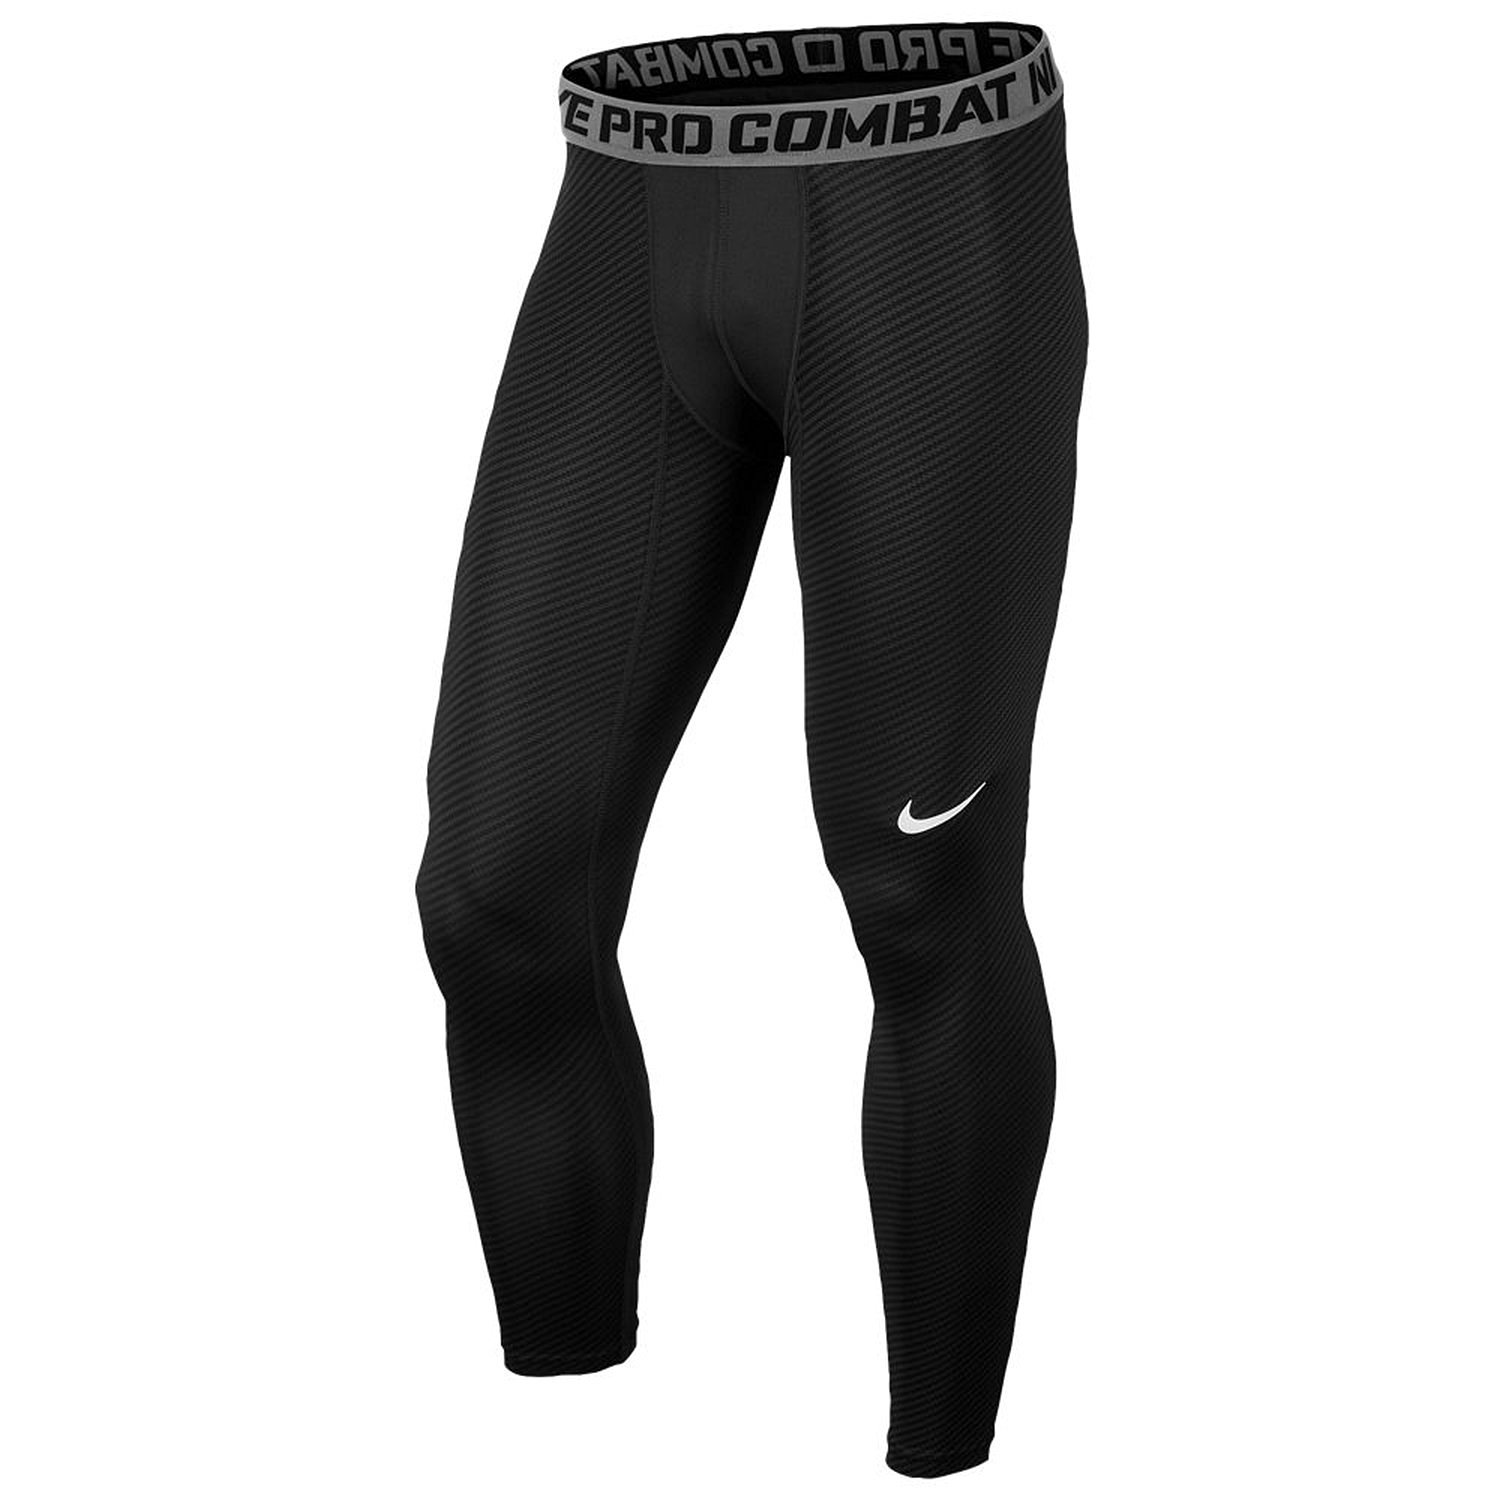 07d60862e Get Quotations · Nike Mens Dri Fit Pro Combat Carbon Fiber Compression  Tights Small